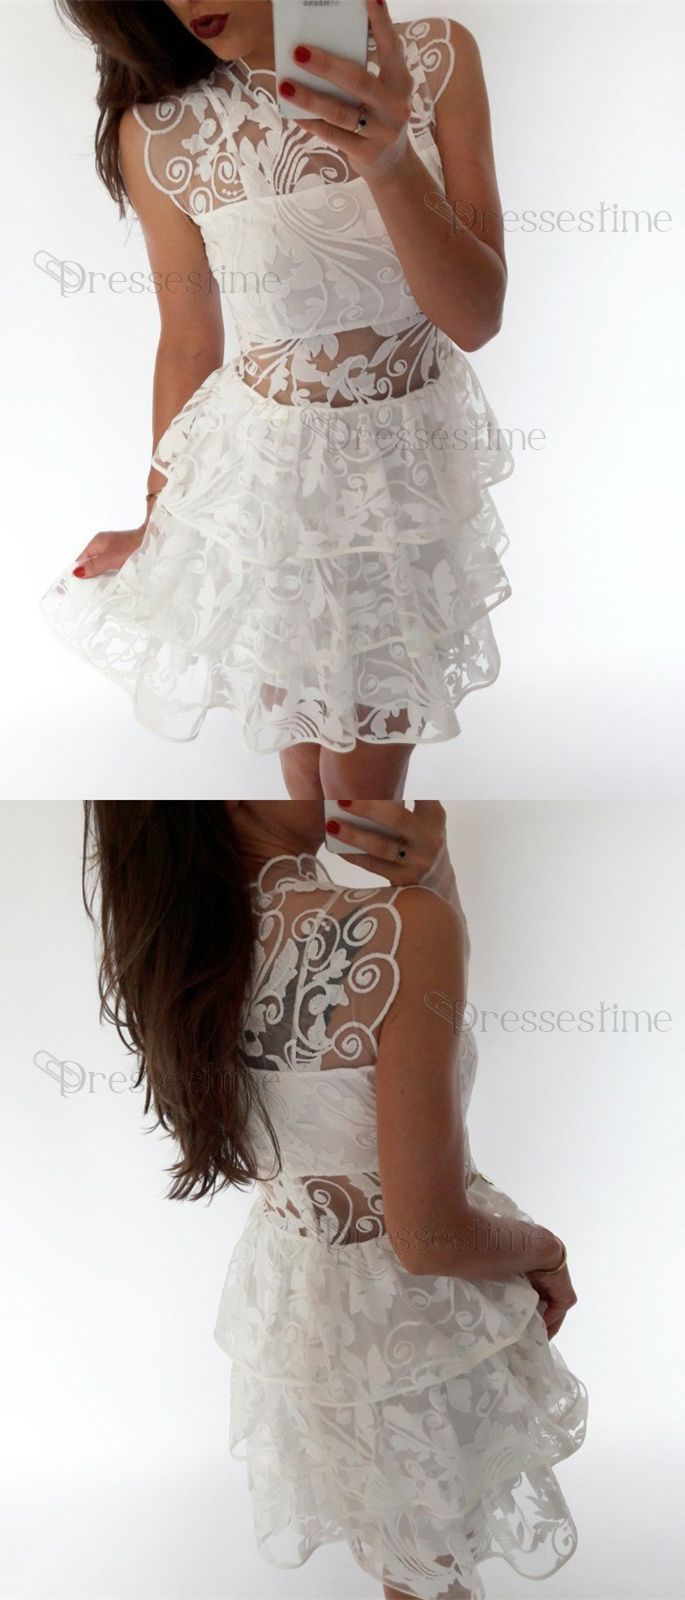 Lace short prom dresses white homecoming dresses simple fall